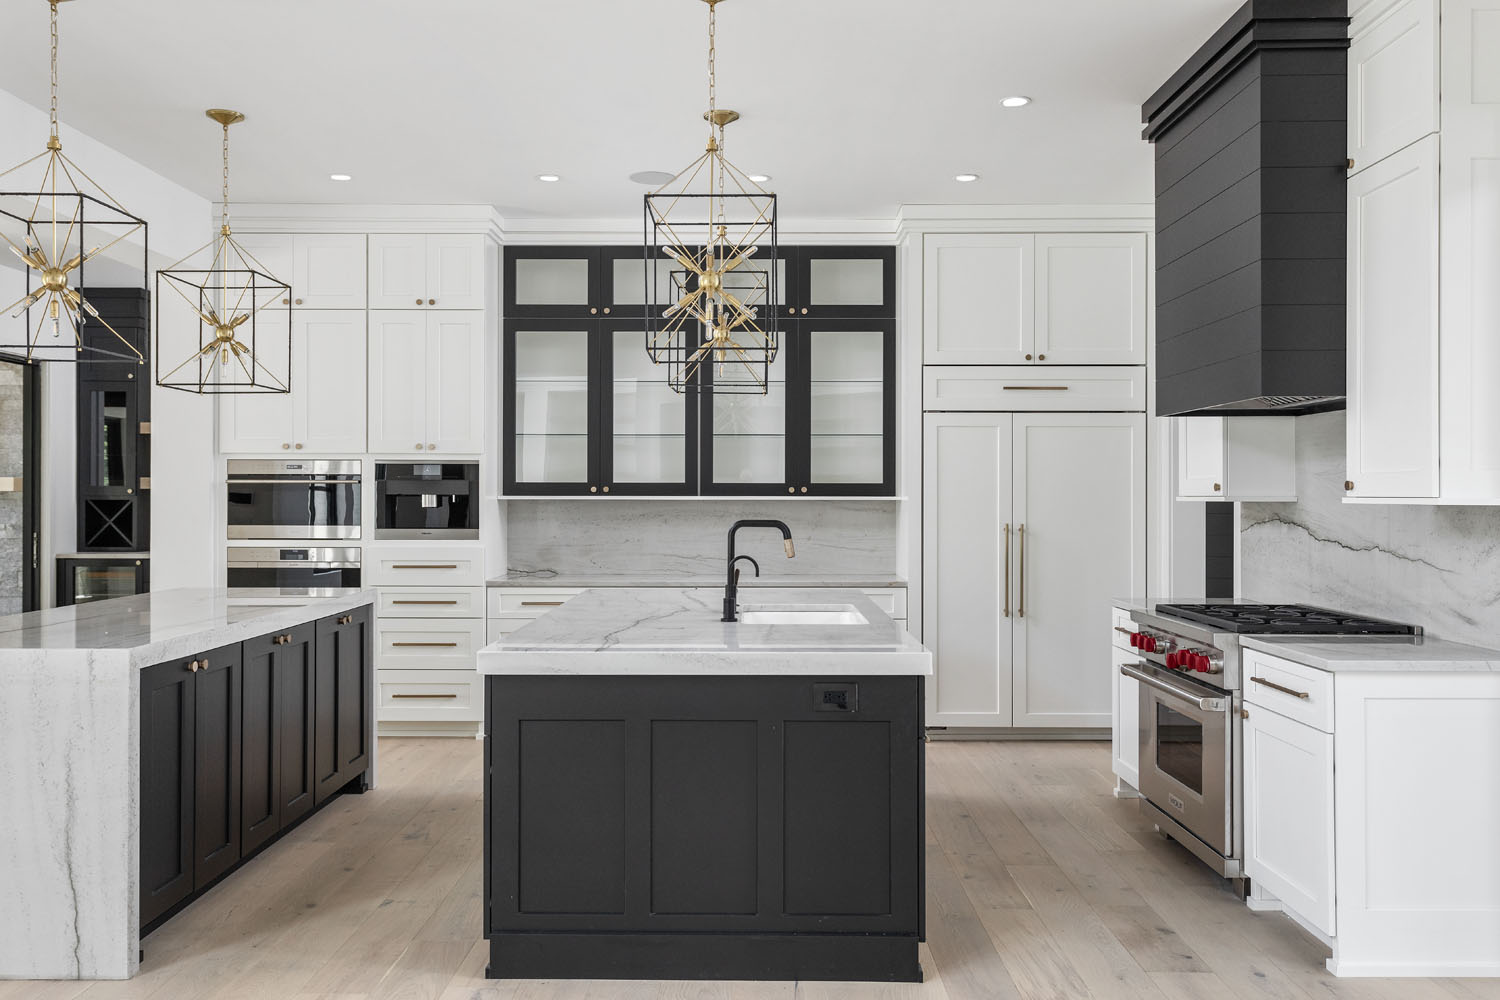 custom luxury home kitchen with wood floors, black cabinets, and marble backsplash